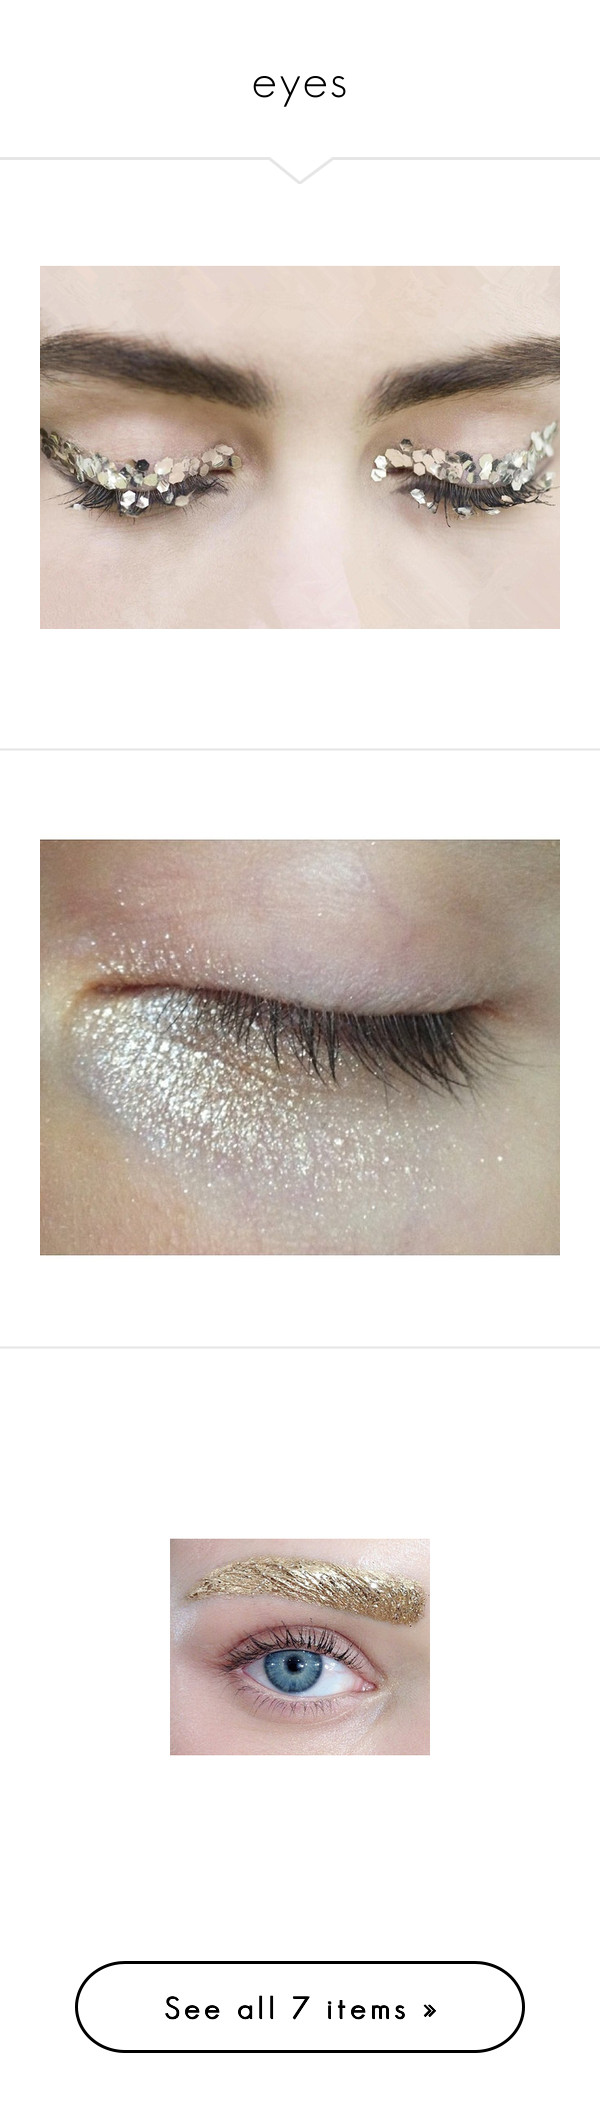 """""""eyes"""" by gb041112 ❤ liked on Polyvore featuring beauty products, makeup, pictures, eyes, photos, backgrounds, people and pics"""